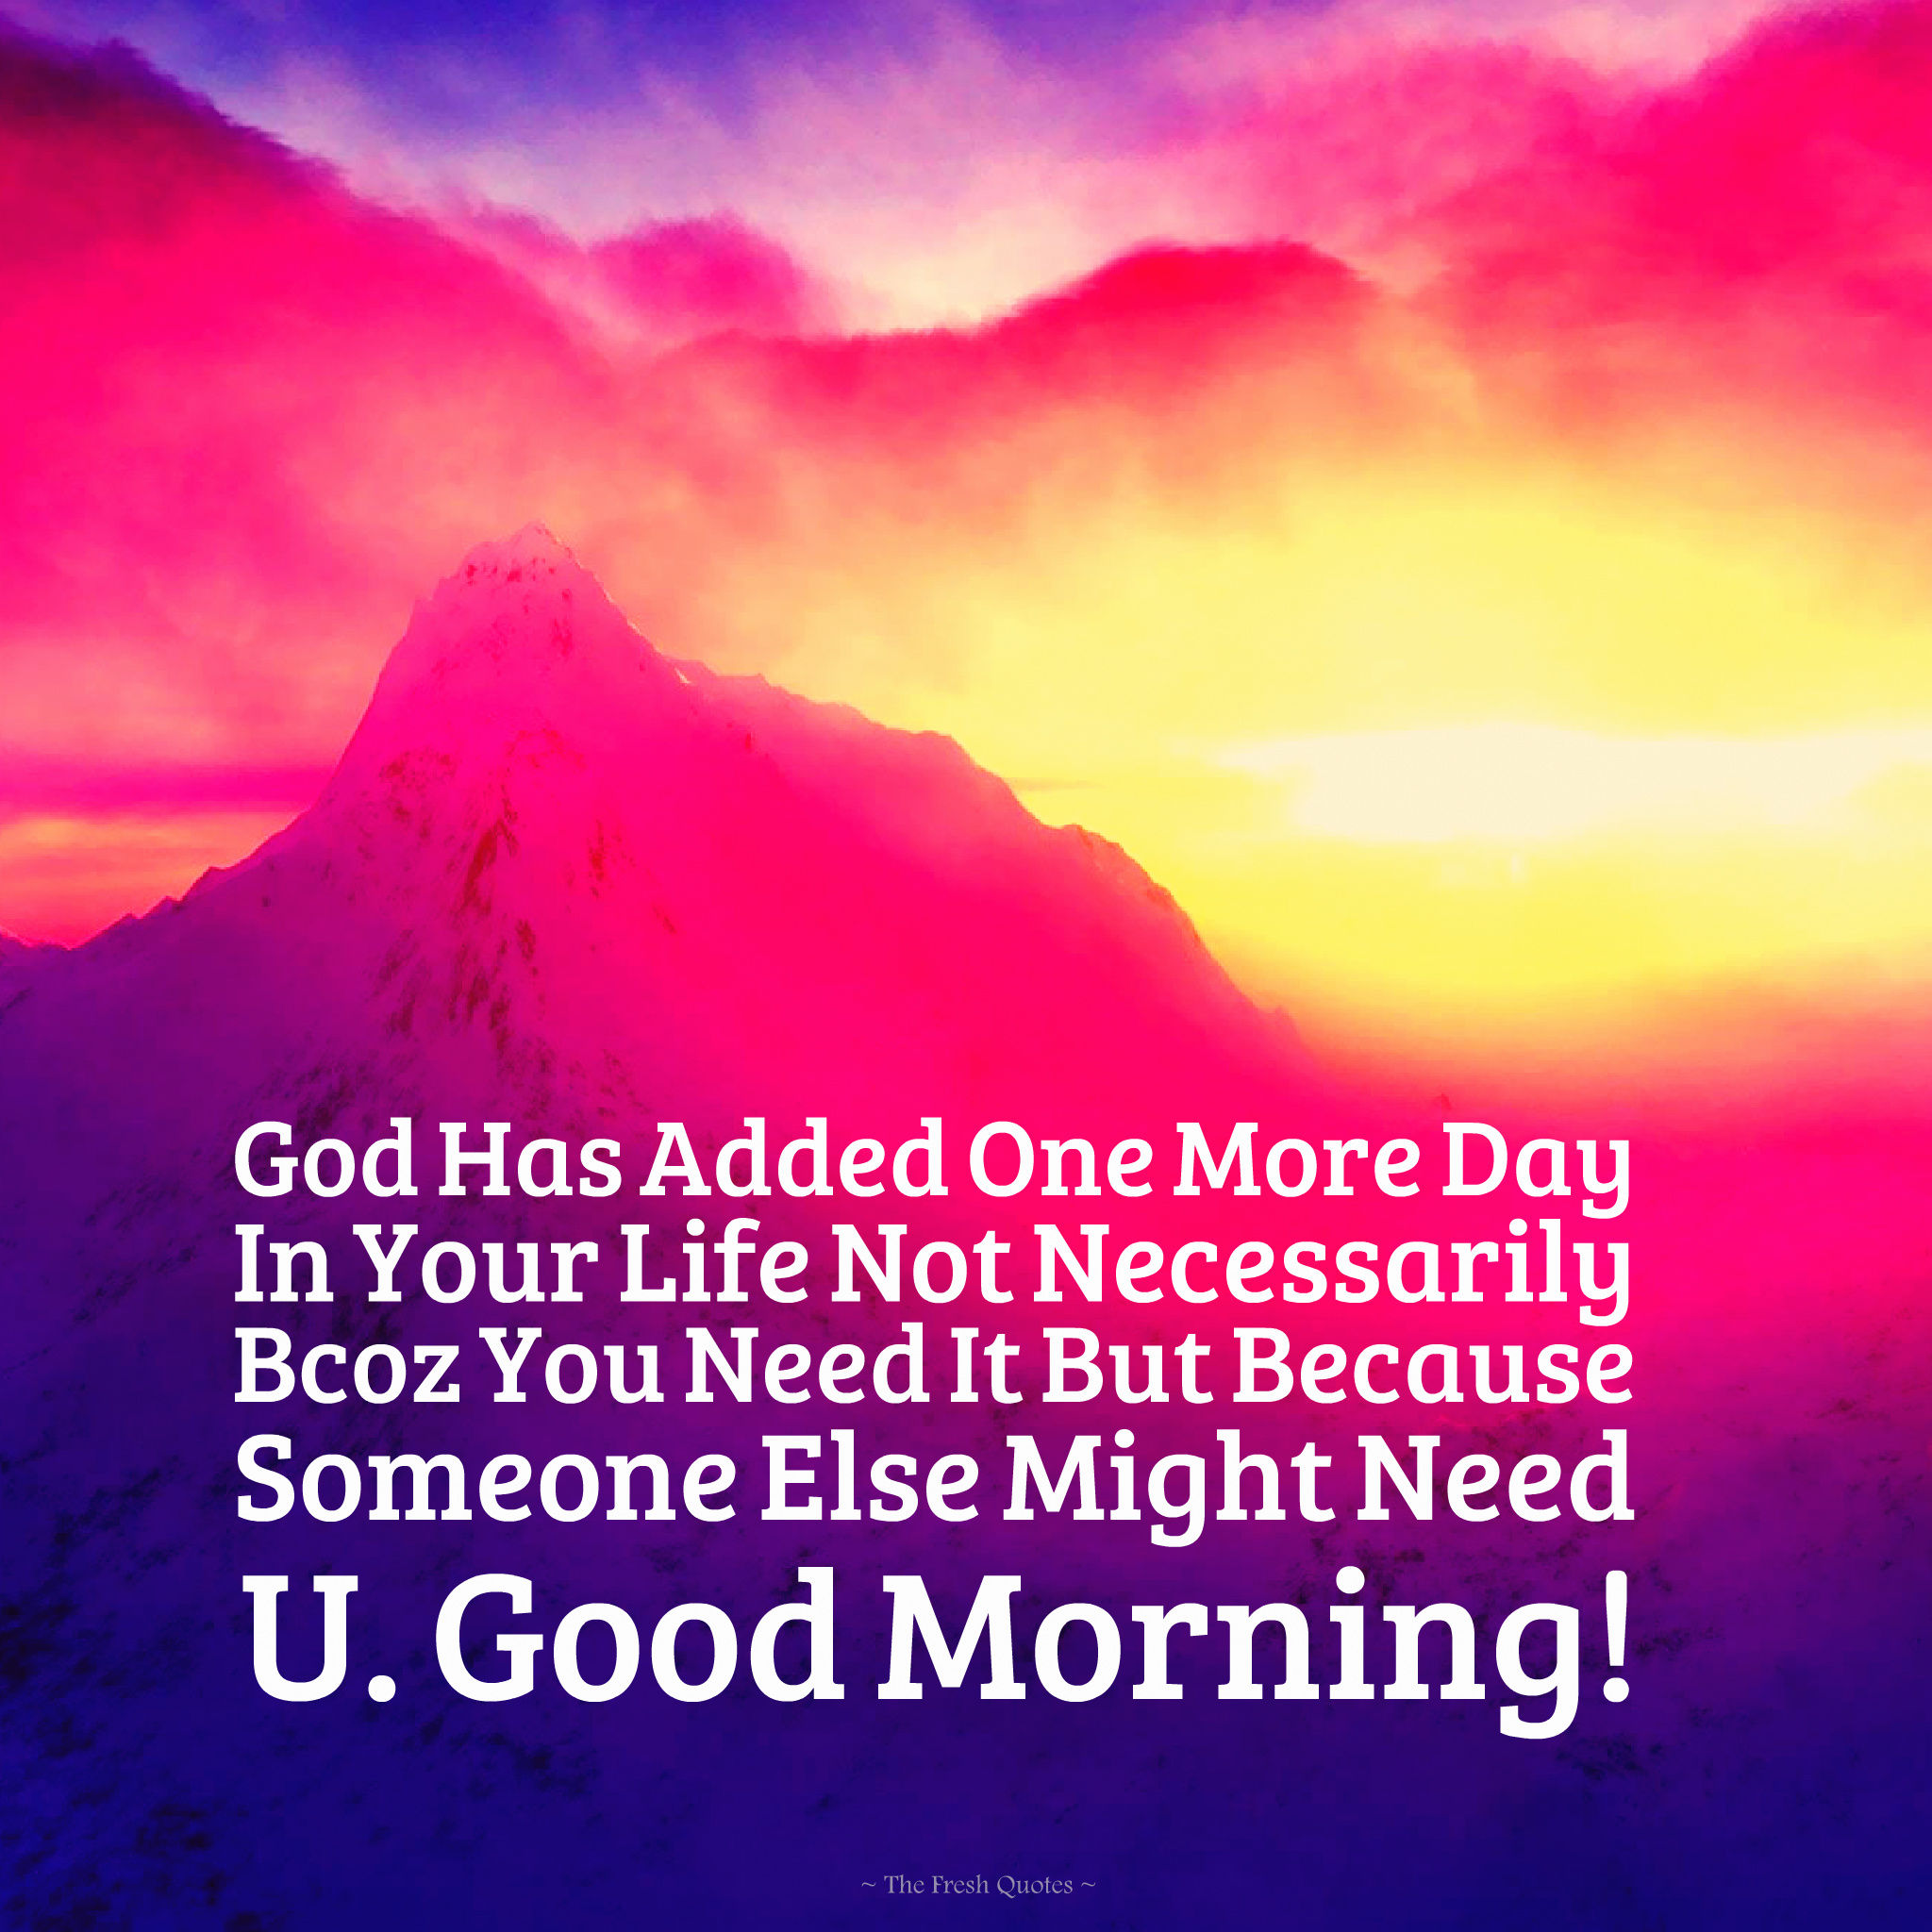 Life Quotes For Good Morning: God Has Added One More Day To Your Life....Good Morning